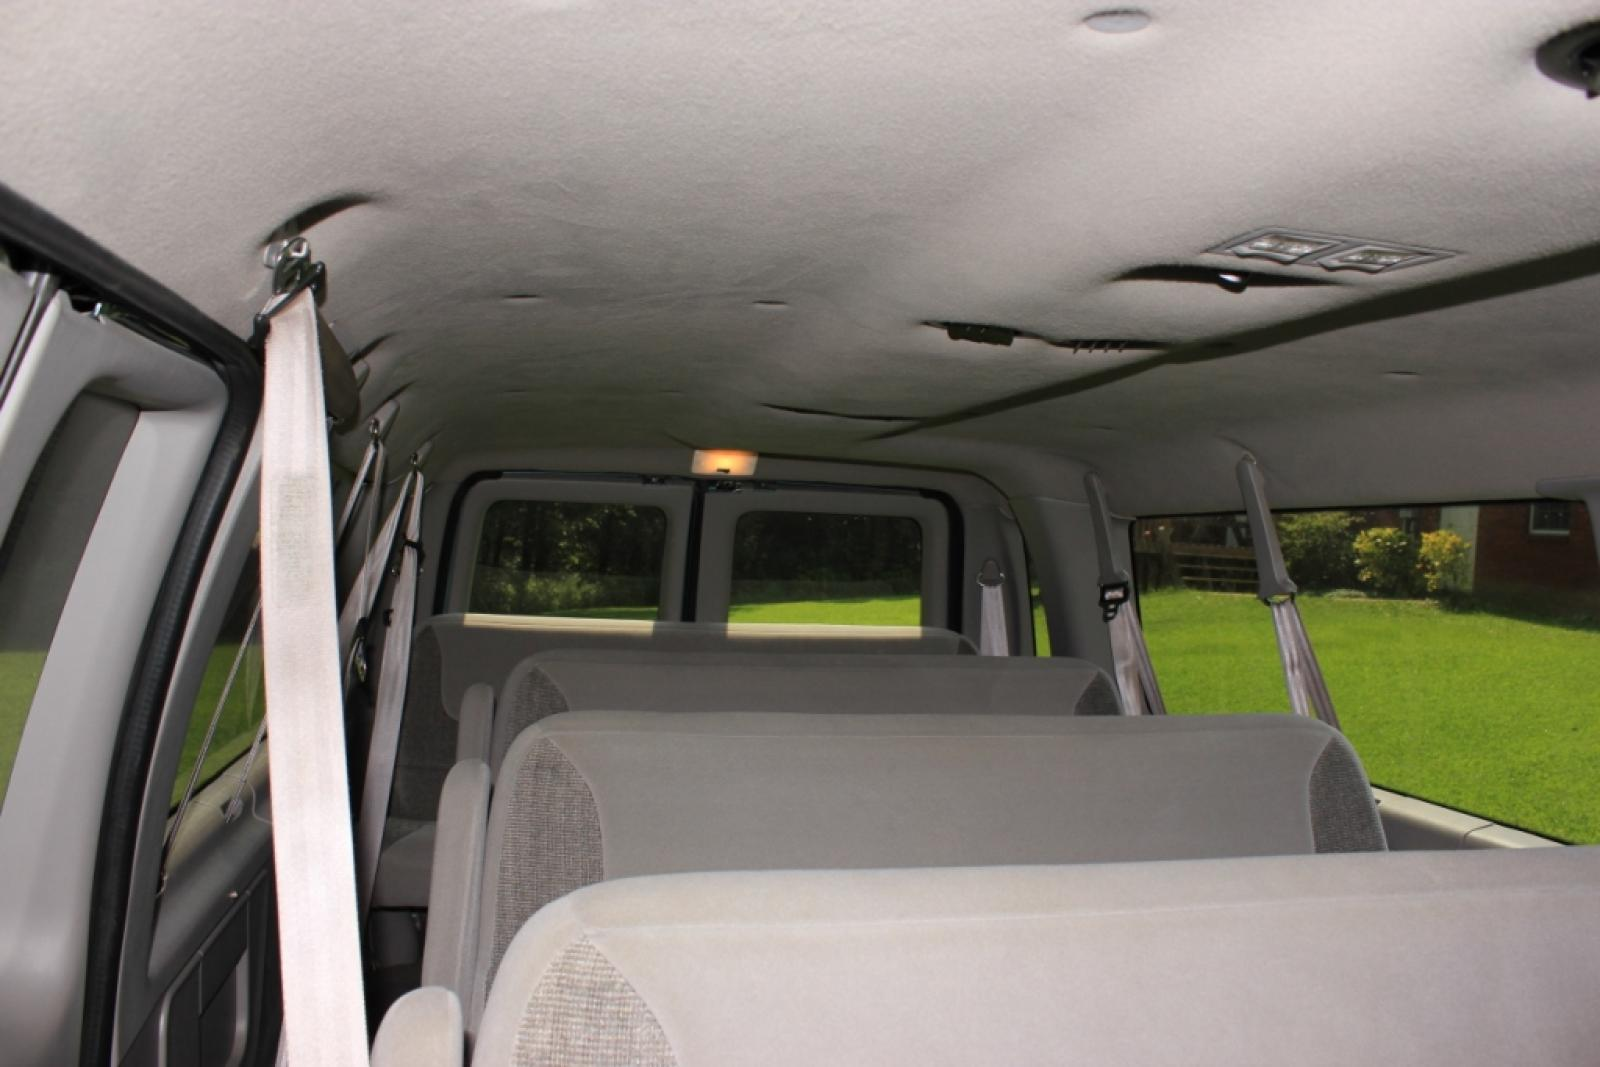 1998 Ford E-350 - Information and photos - Zomb Drive